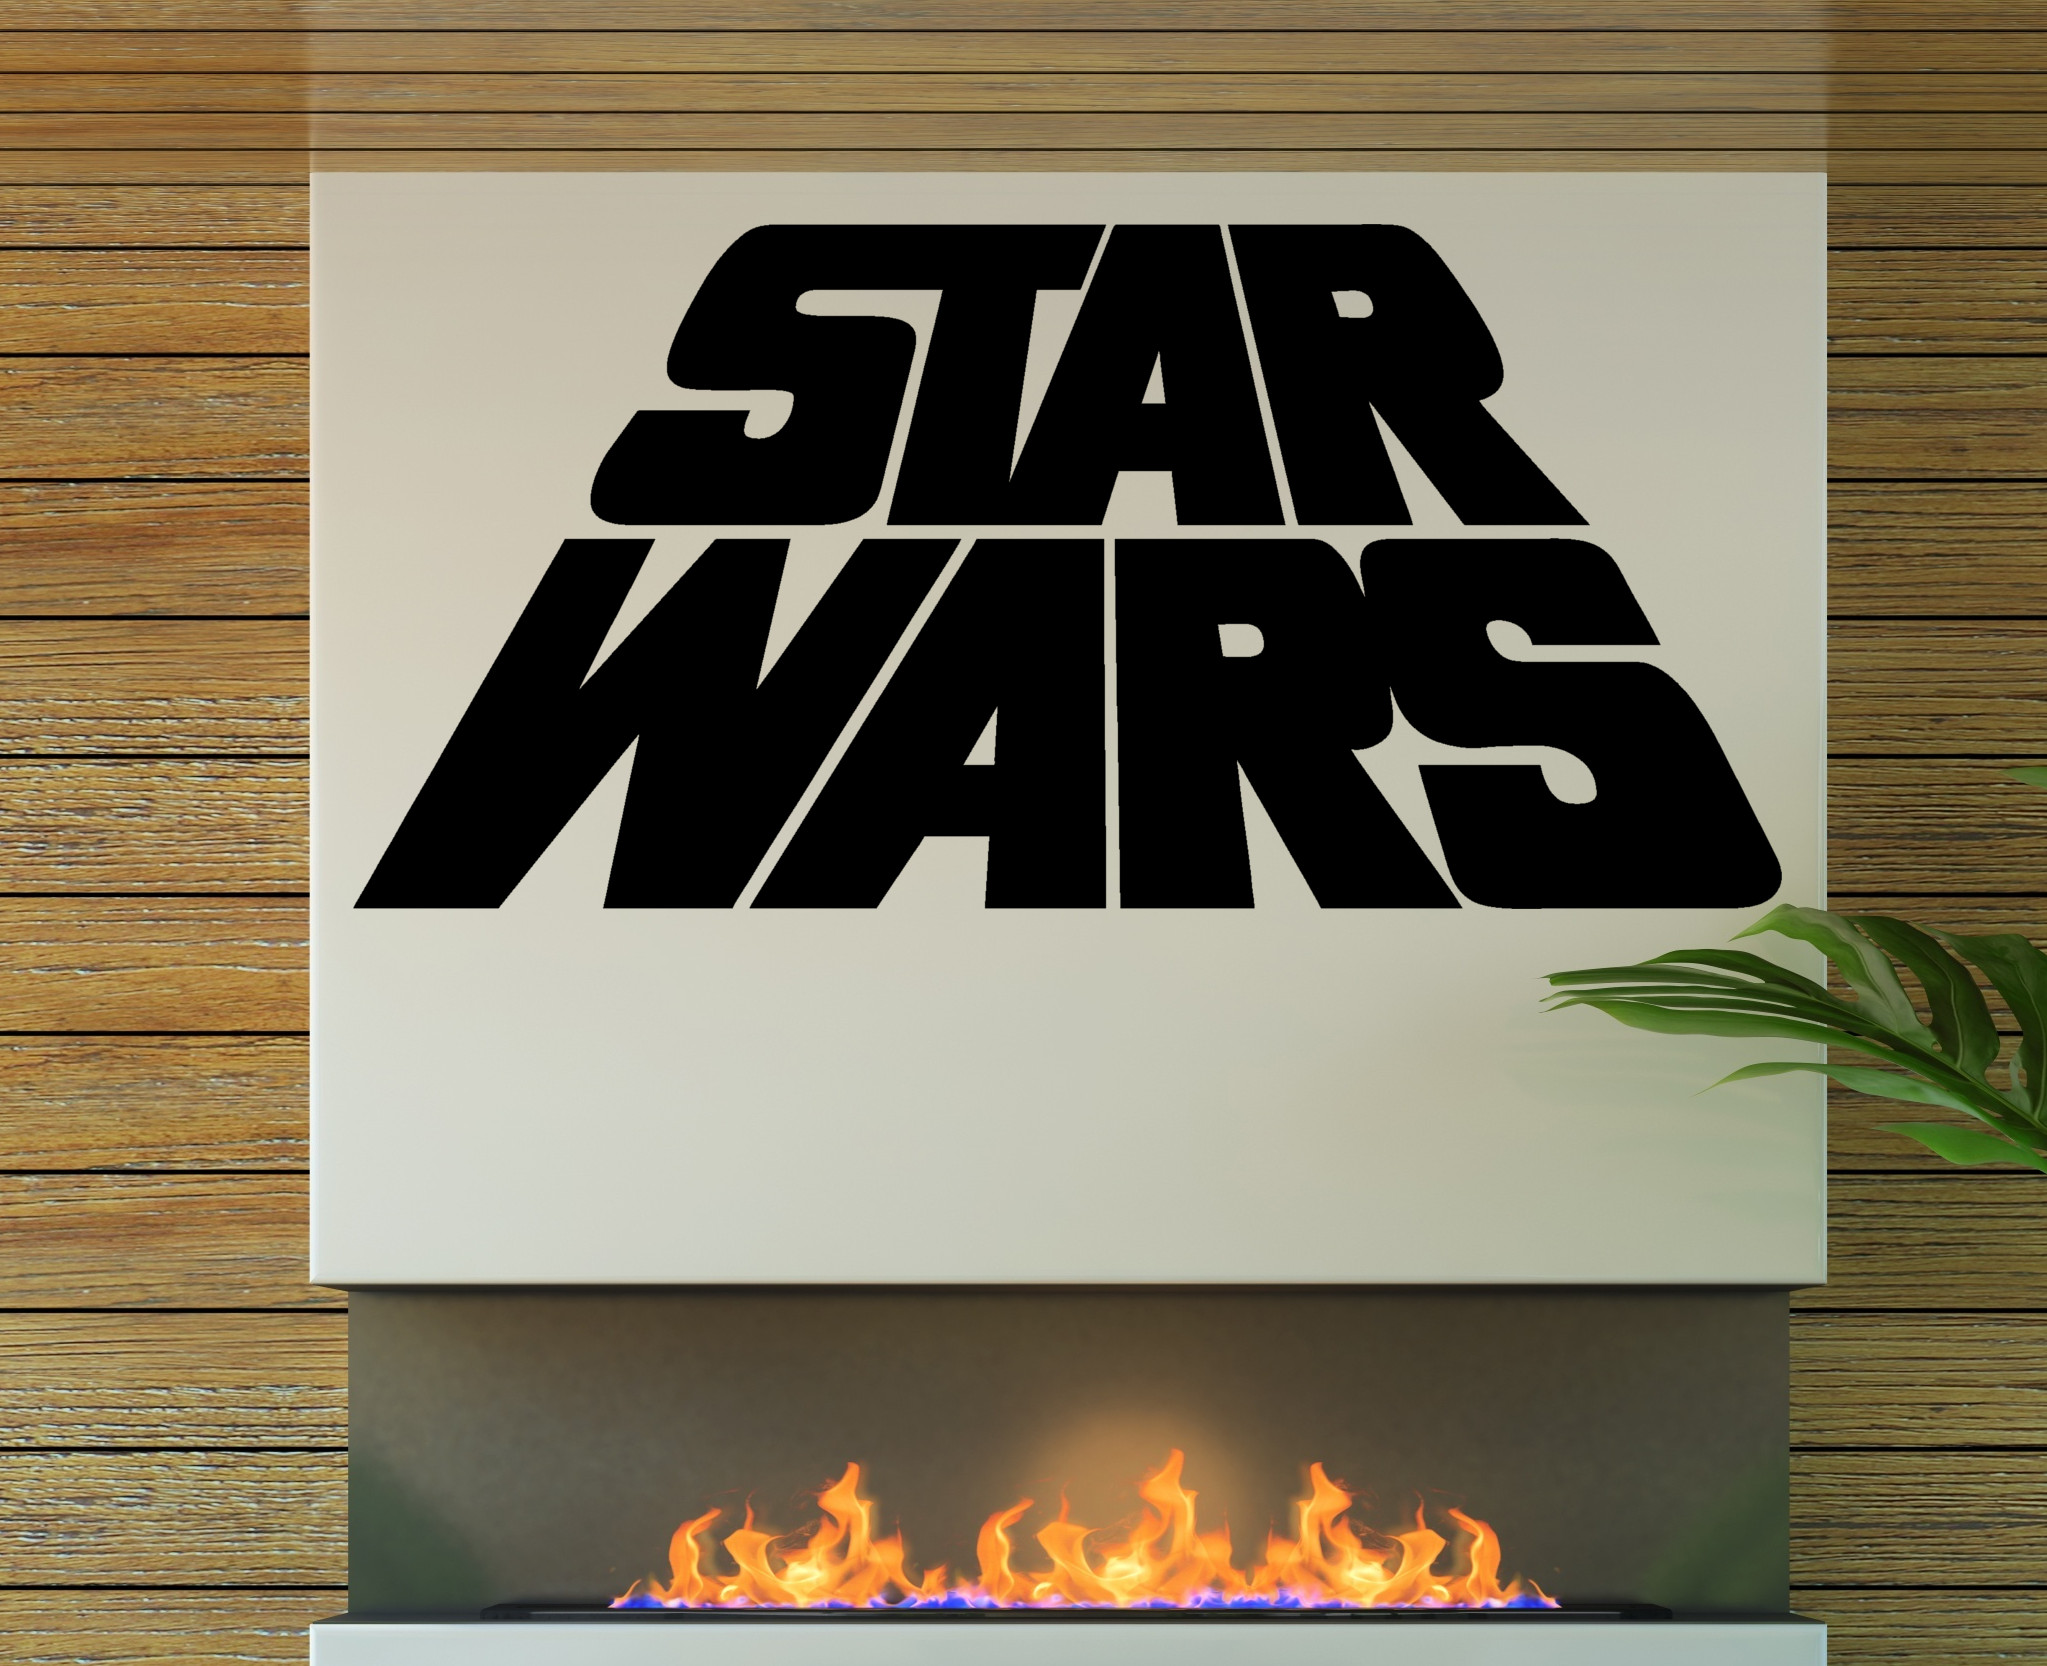 streetwall wandtattoo star wars logo wandbild aufkleber. Black Bedroom Furniture Sets. Home Design Ideas